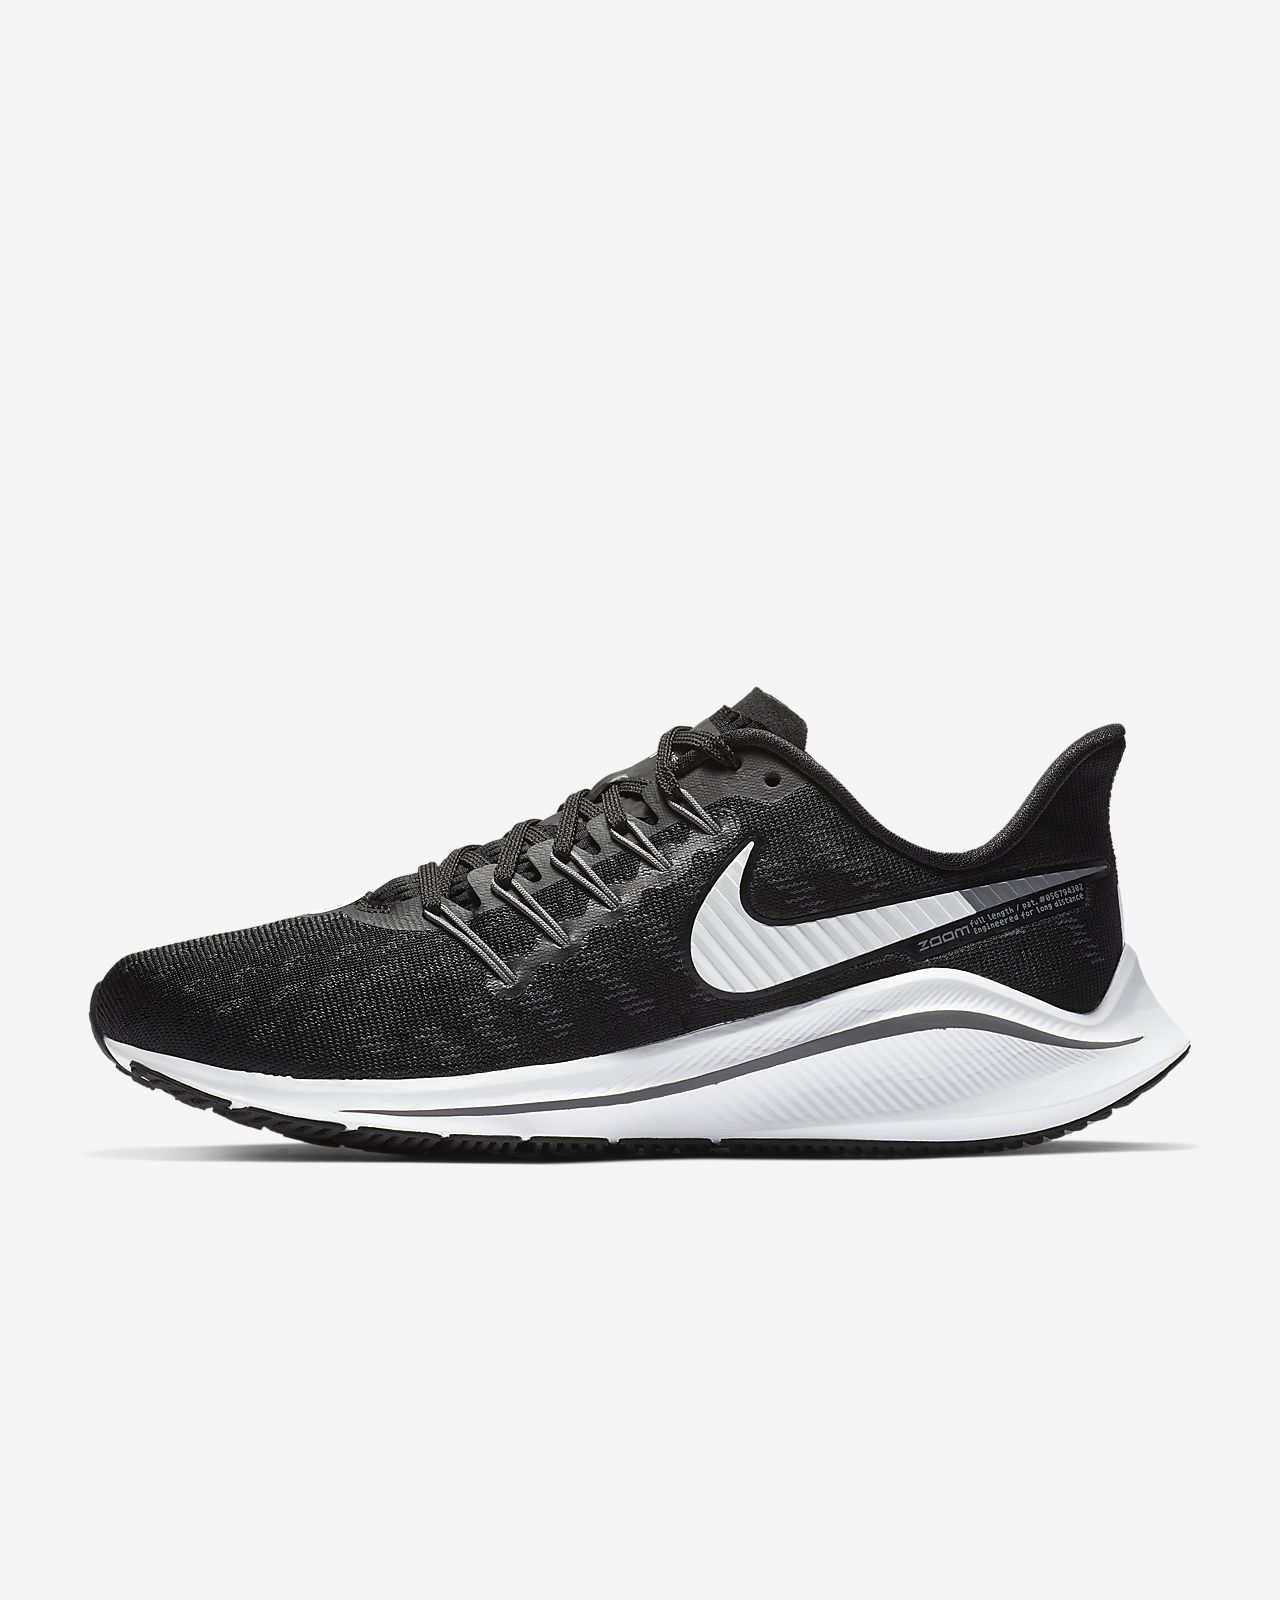 556c80c4 Nike Air Zoom Vomero 14 Women's Running Shoe. Nike.com